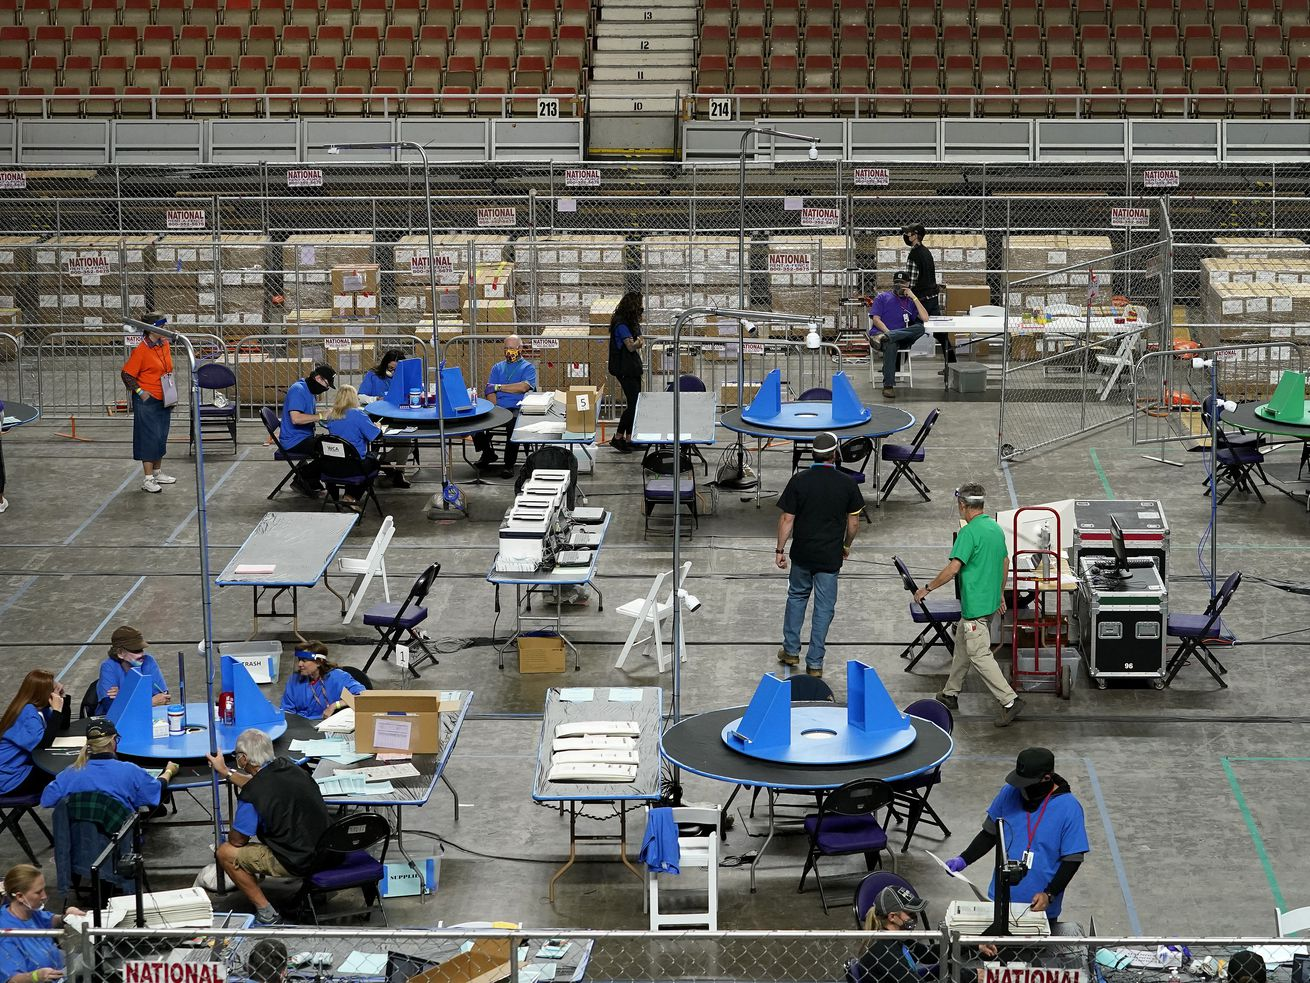 Maricopa County ballots cast in the 2020 general election are examined and recounted by contractors working for Florida-based company, Cyber Ninjas, Thursday, May 6, 2021 at Veterans Memorial Coliseum in Phoenix.